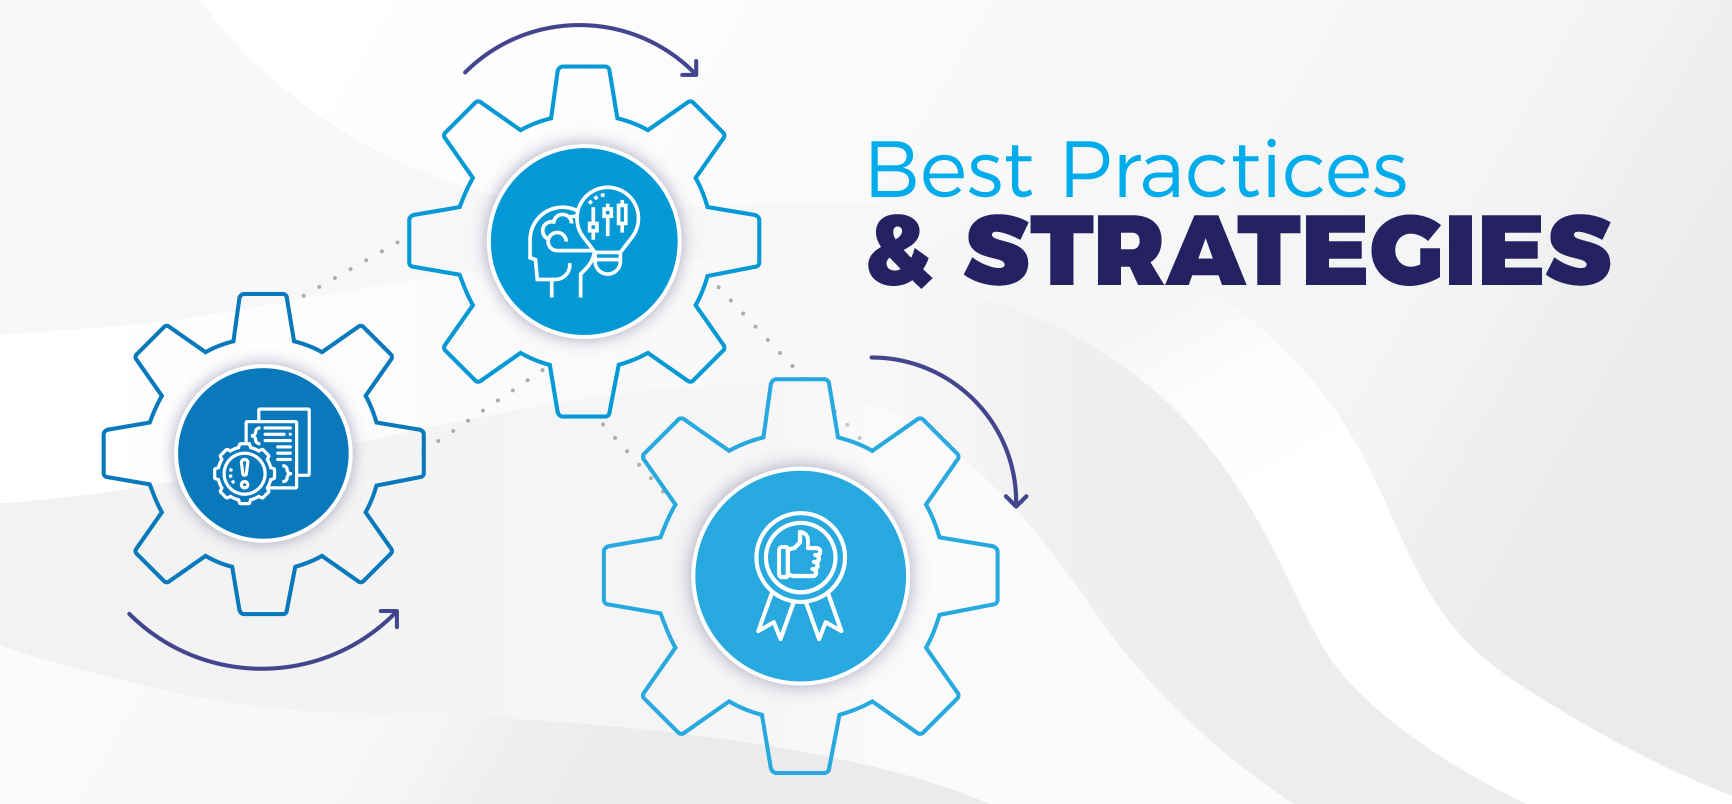 Effective Learning and Development Programs Best Practices and Strategies